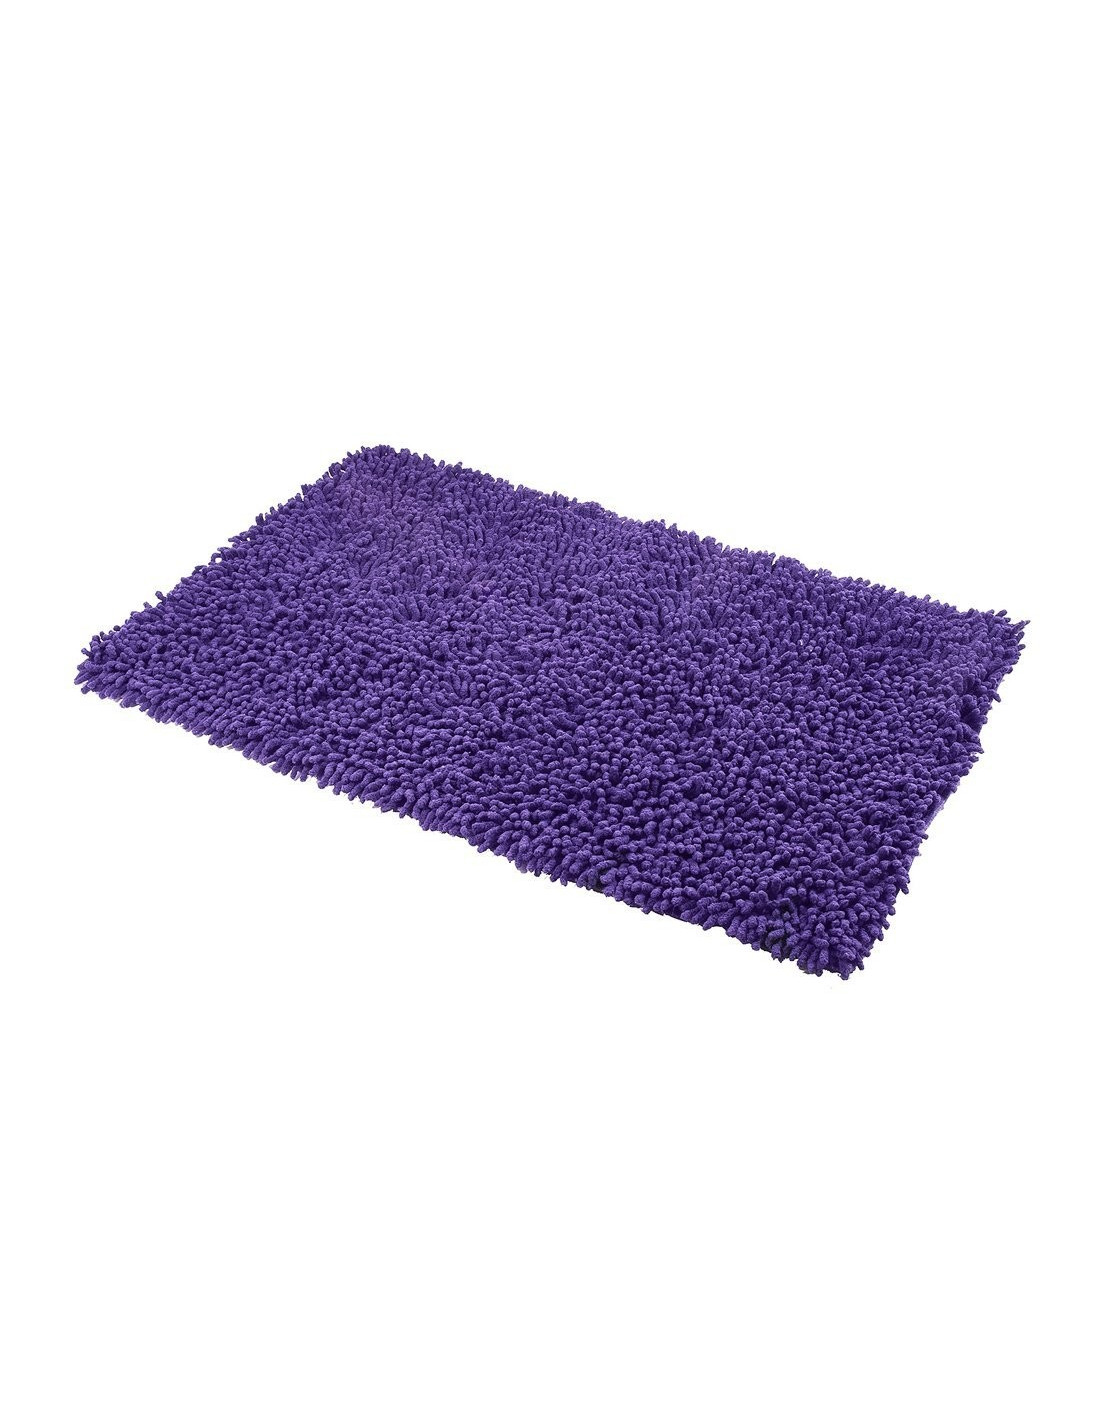 frandis tapis de bain maille chenille coton aubergine 50 x 80 cm hyper brico. Black Bedroom Furniture Sets. Home Design Ideas